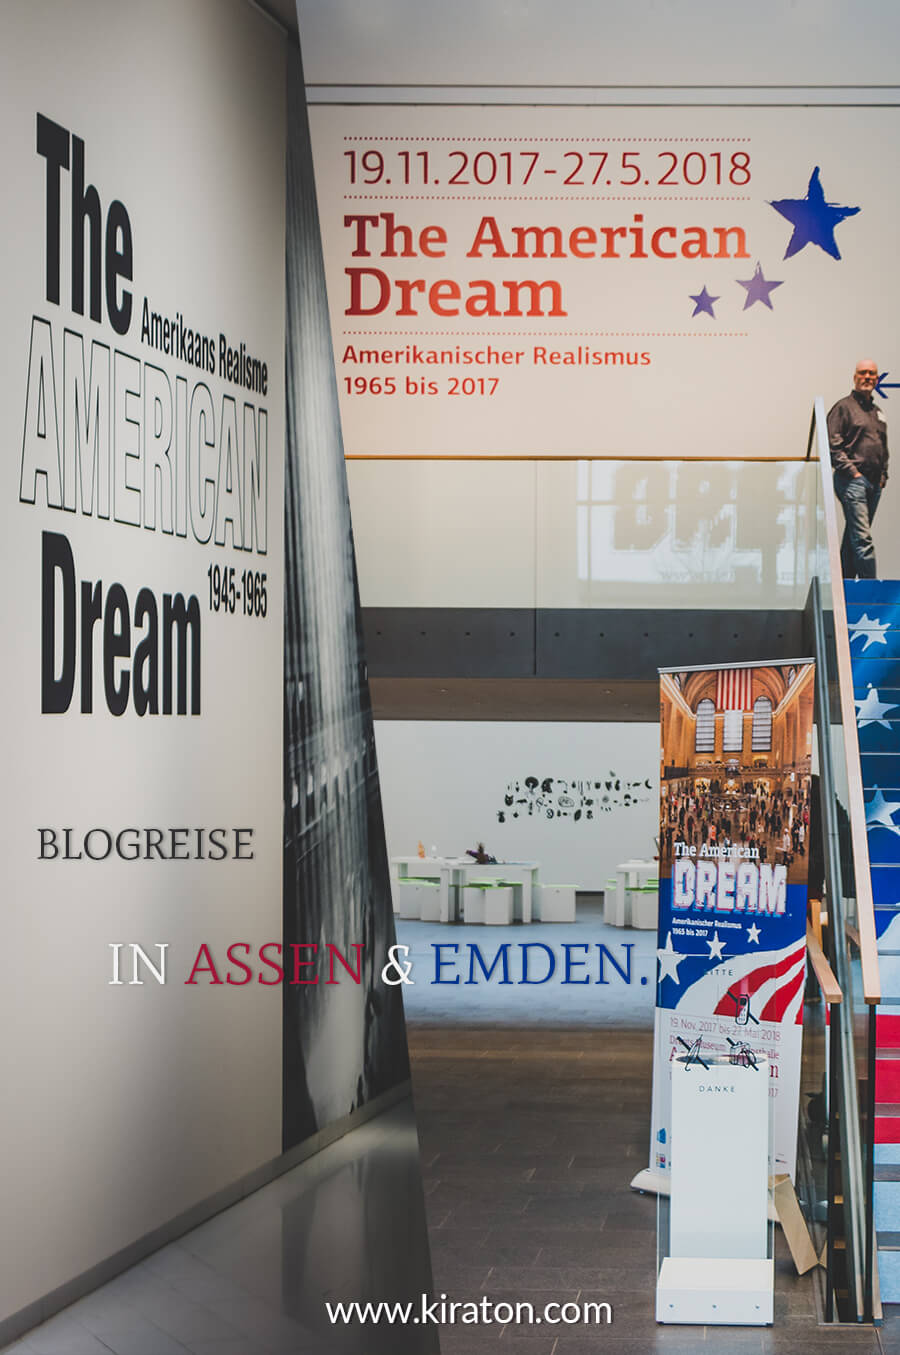 Blogreise The American Dream in Assen & Emden.